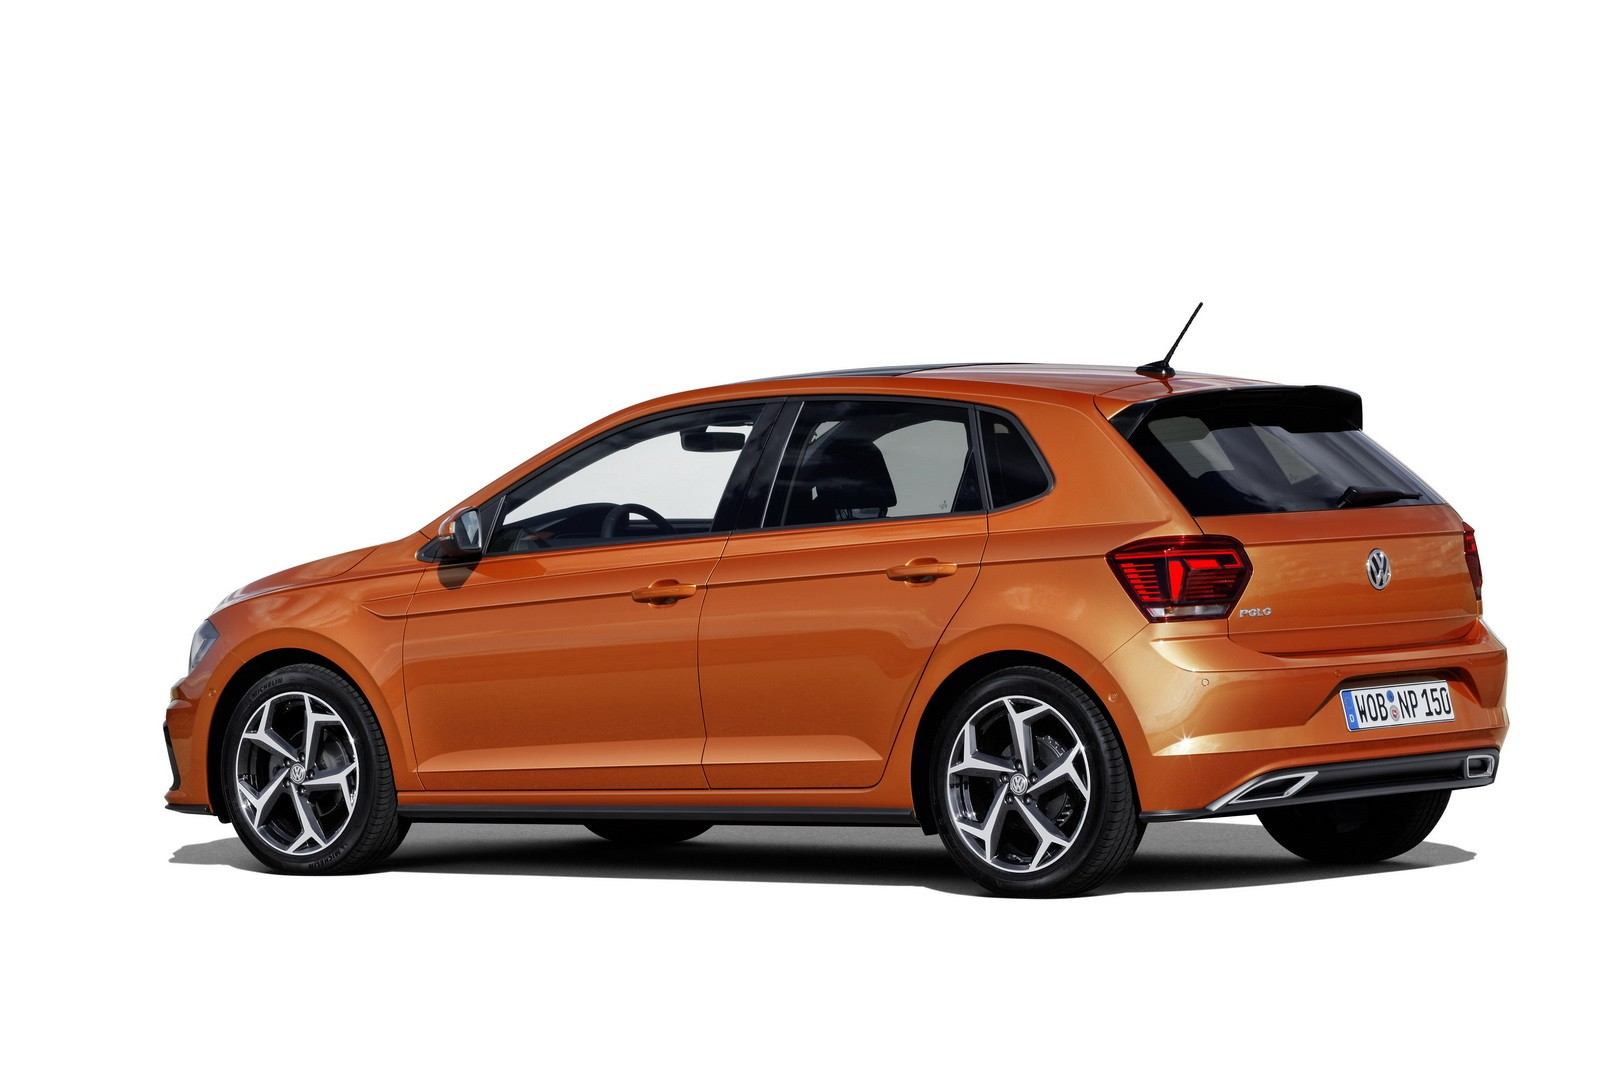 VW polo vw : 2018 Volkswagen Polo Isn't Coming To The U.S. - autoevolution